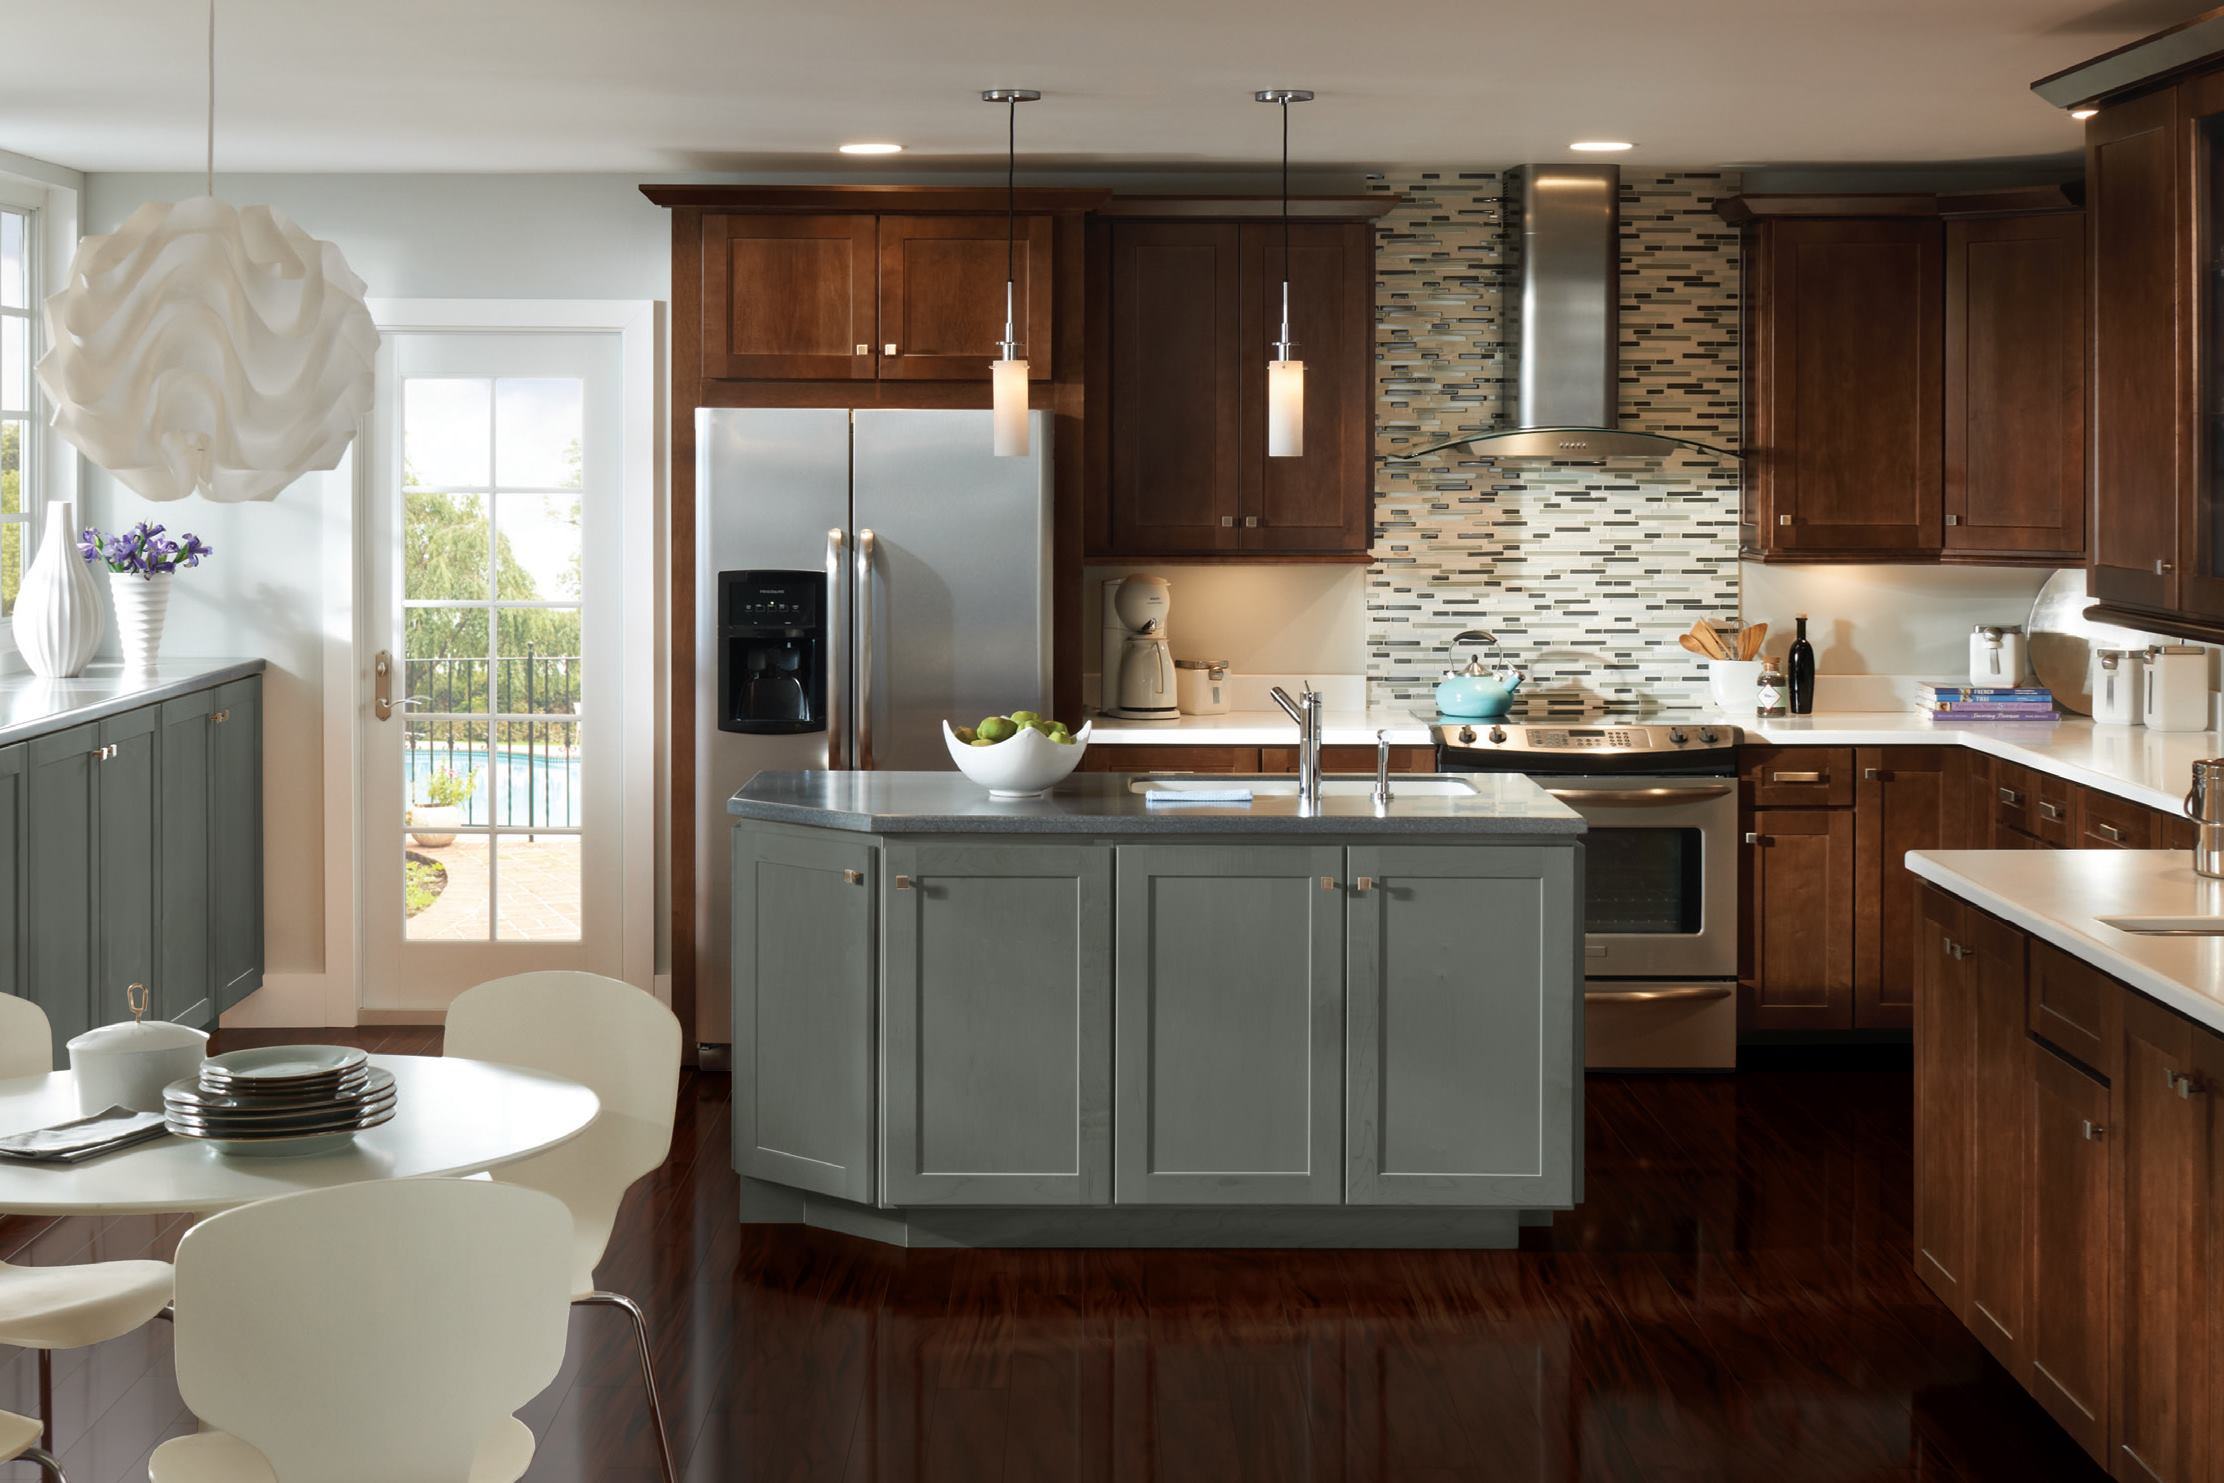 Beau Armstrong Cabinets Relaunches As Echelon Cabinetry | JLC Online | Cabinets,  Kitchen, Design